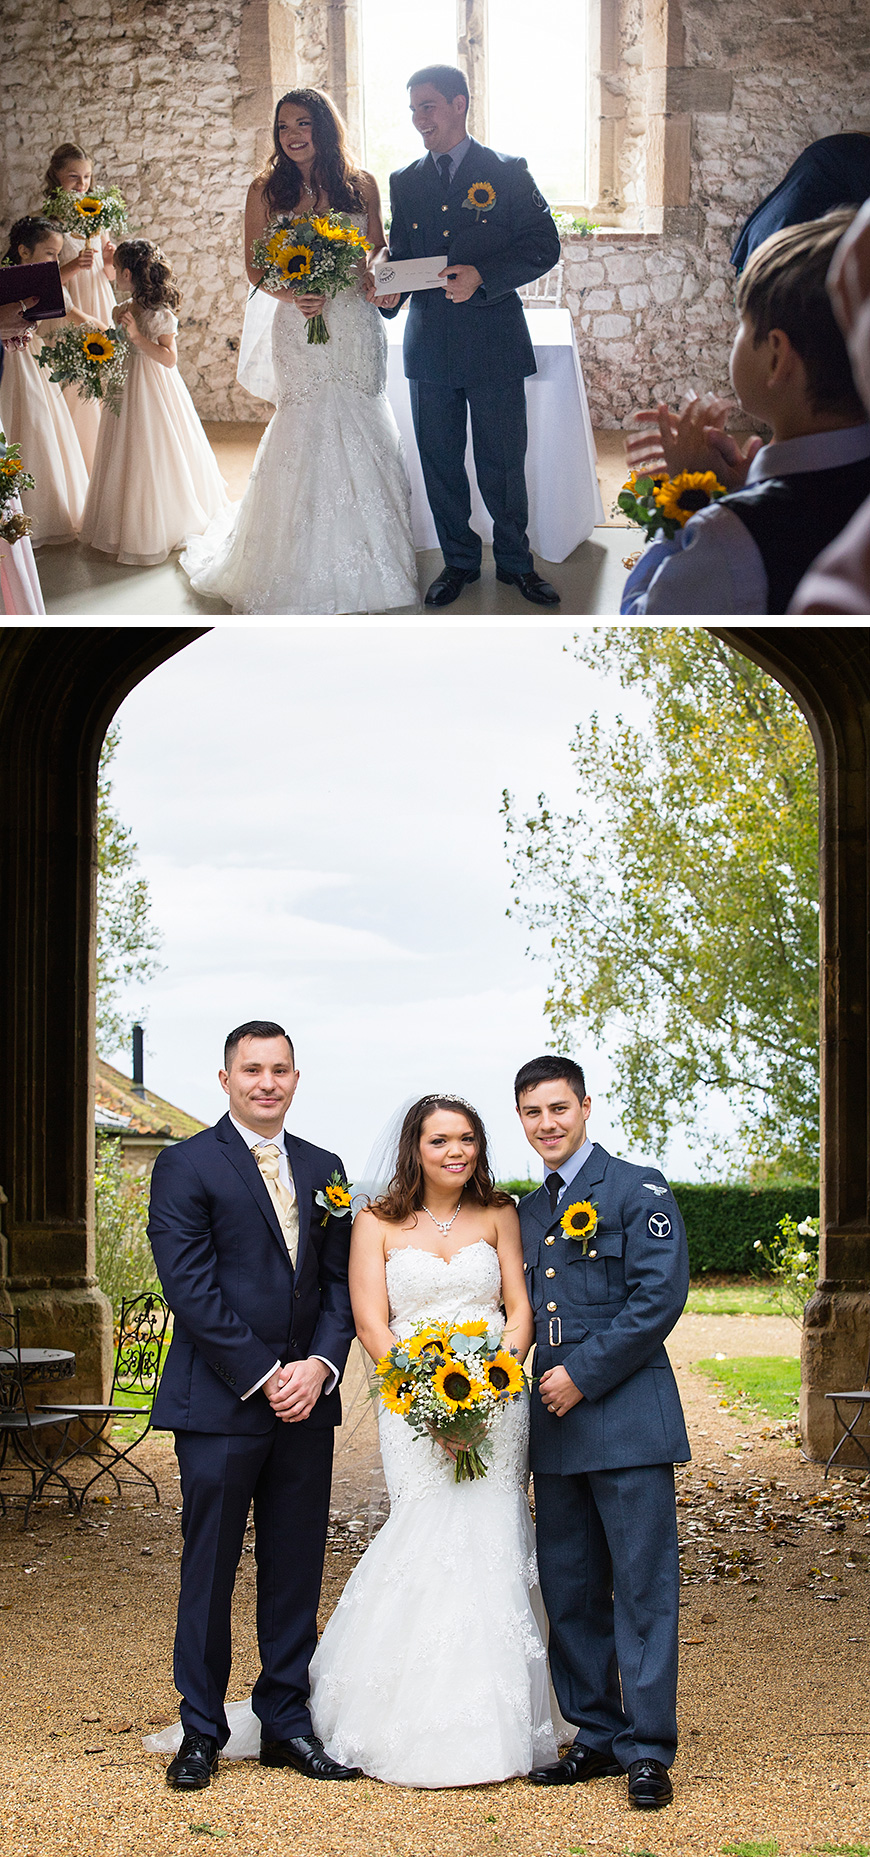 Alexie and Marcus's Medieval Rustic Wedding at Pentney Abbey | CHWV